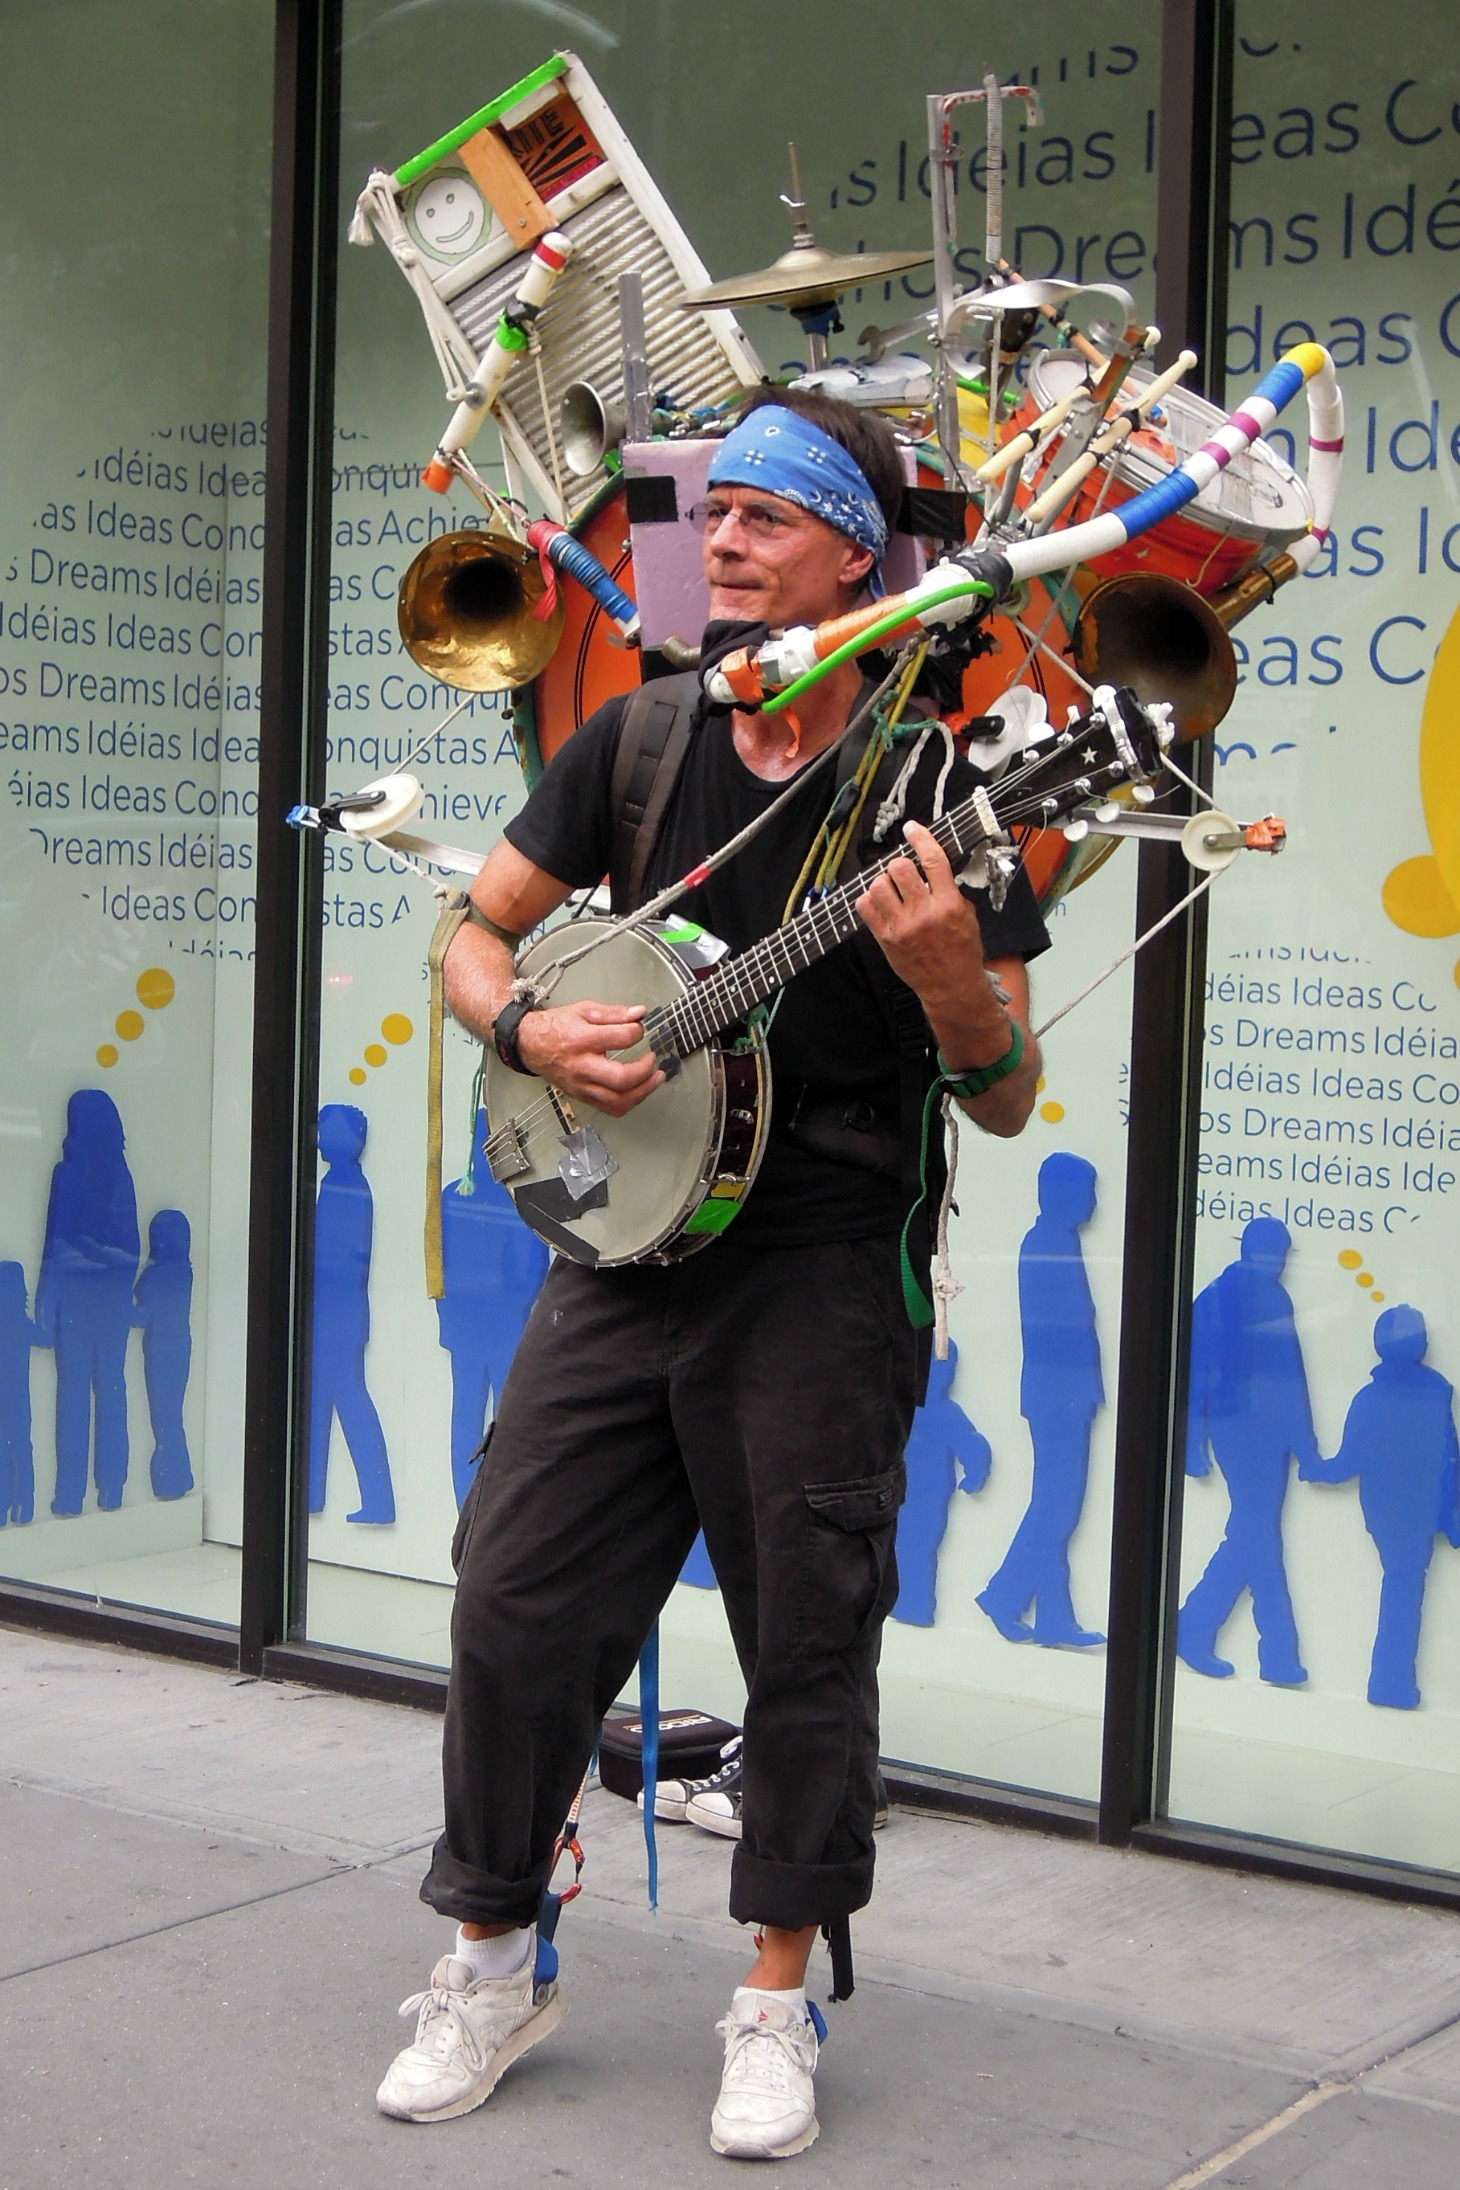 one-man_band_street_performer_-_5